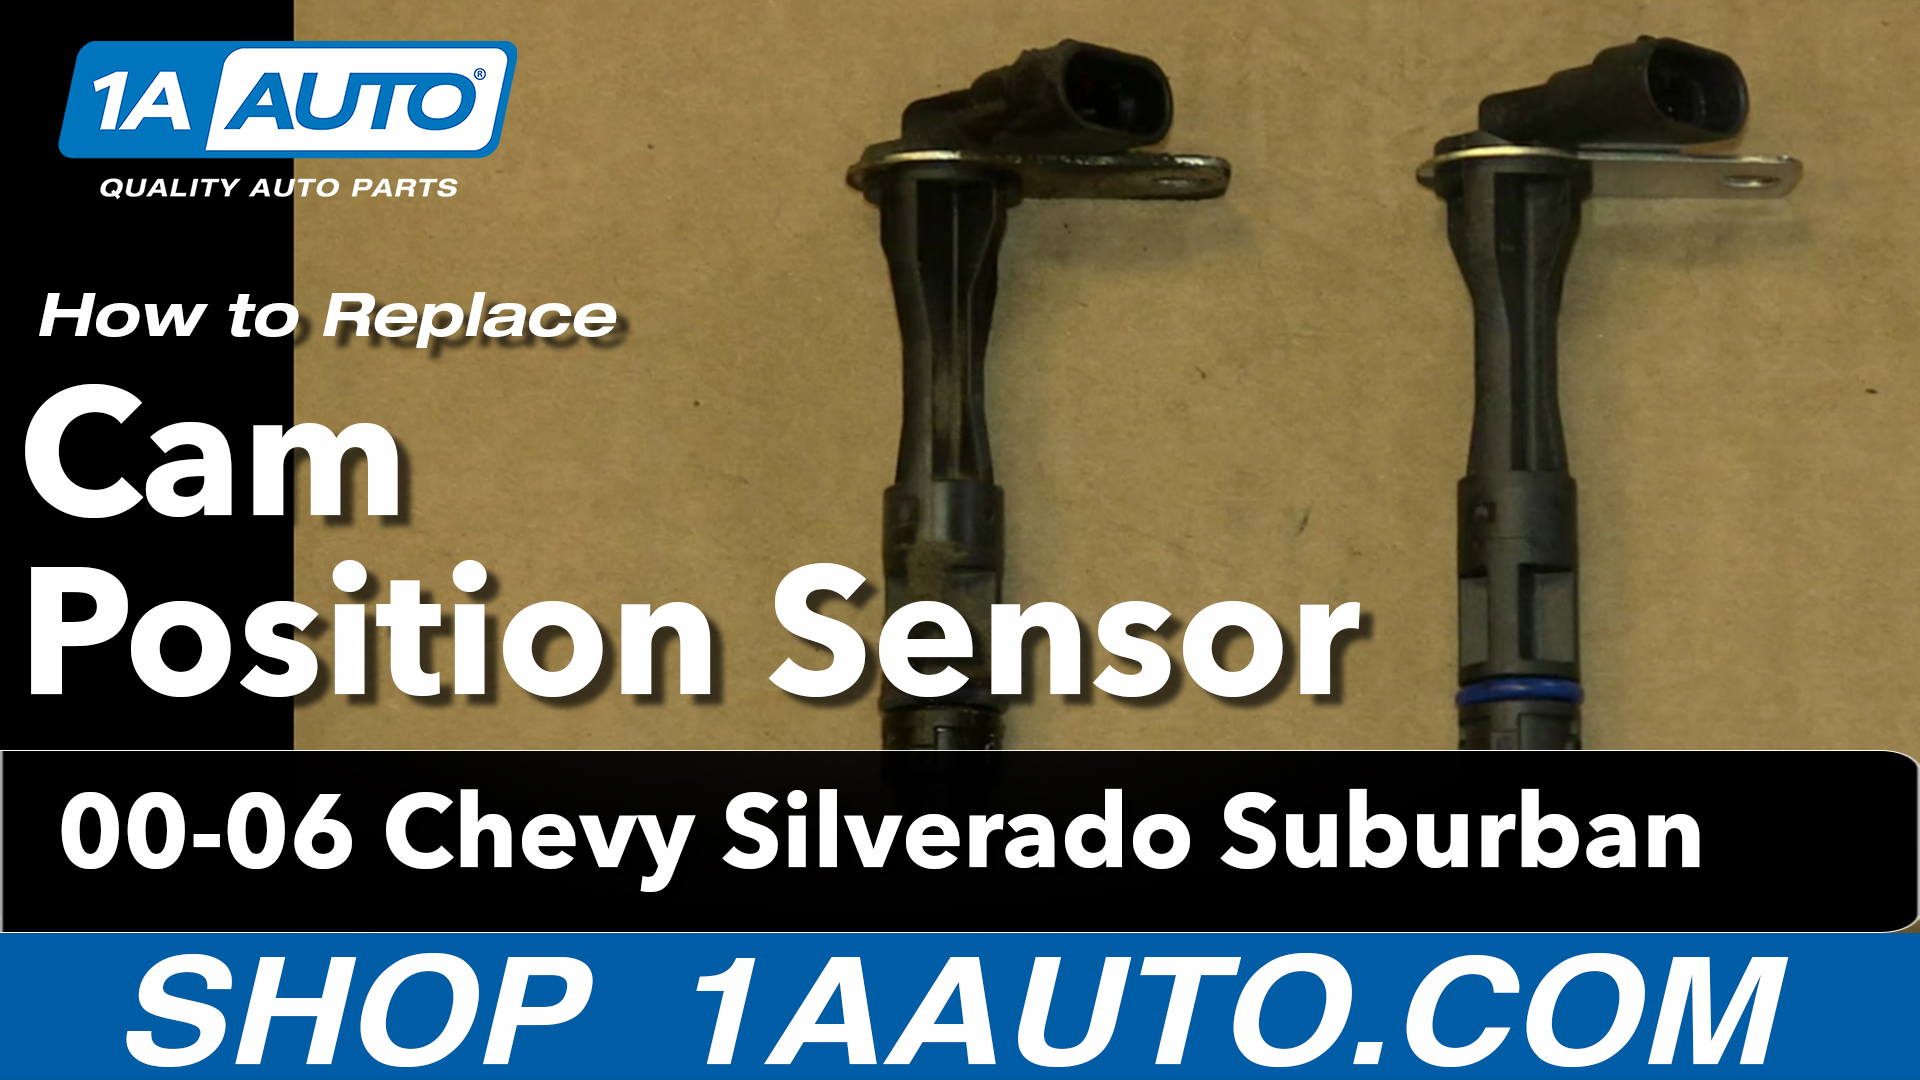 How to Replace Camshaft Position Sensor 00-06 Chevy Suburban 1500